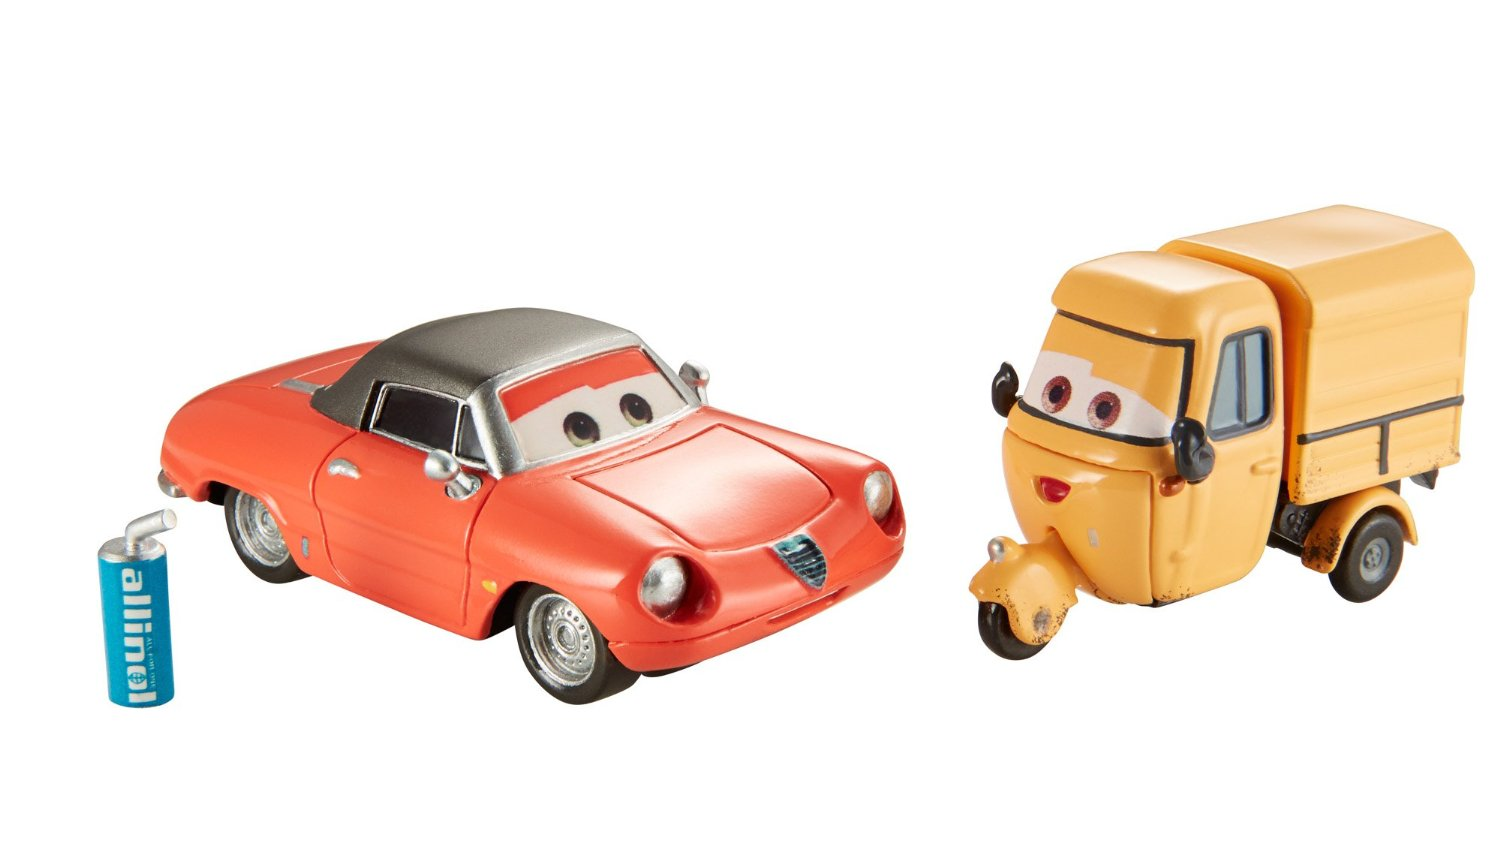 Disney/Pixar Cars, Allinol Blowout Die-Cast Vehicles, Shawn Krash and Sal Machiani #4-5/9, 1:55 Scale